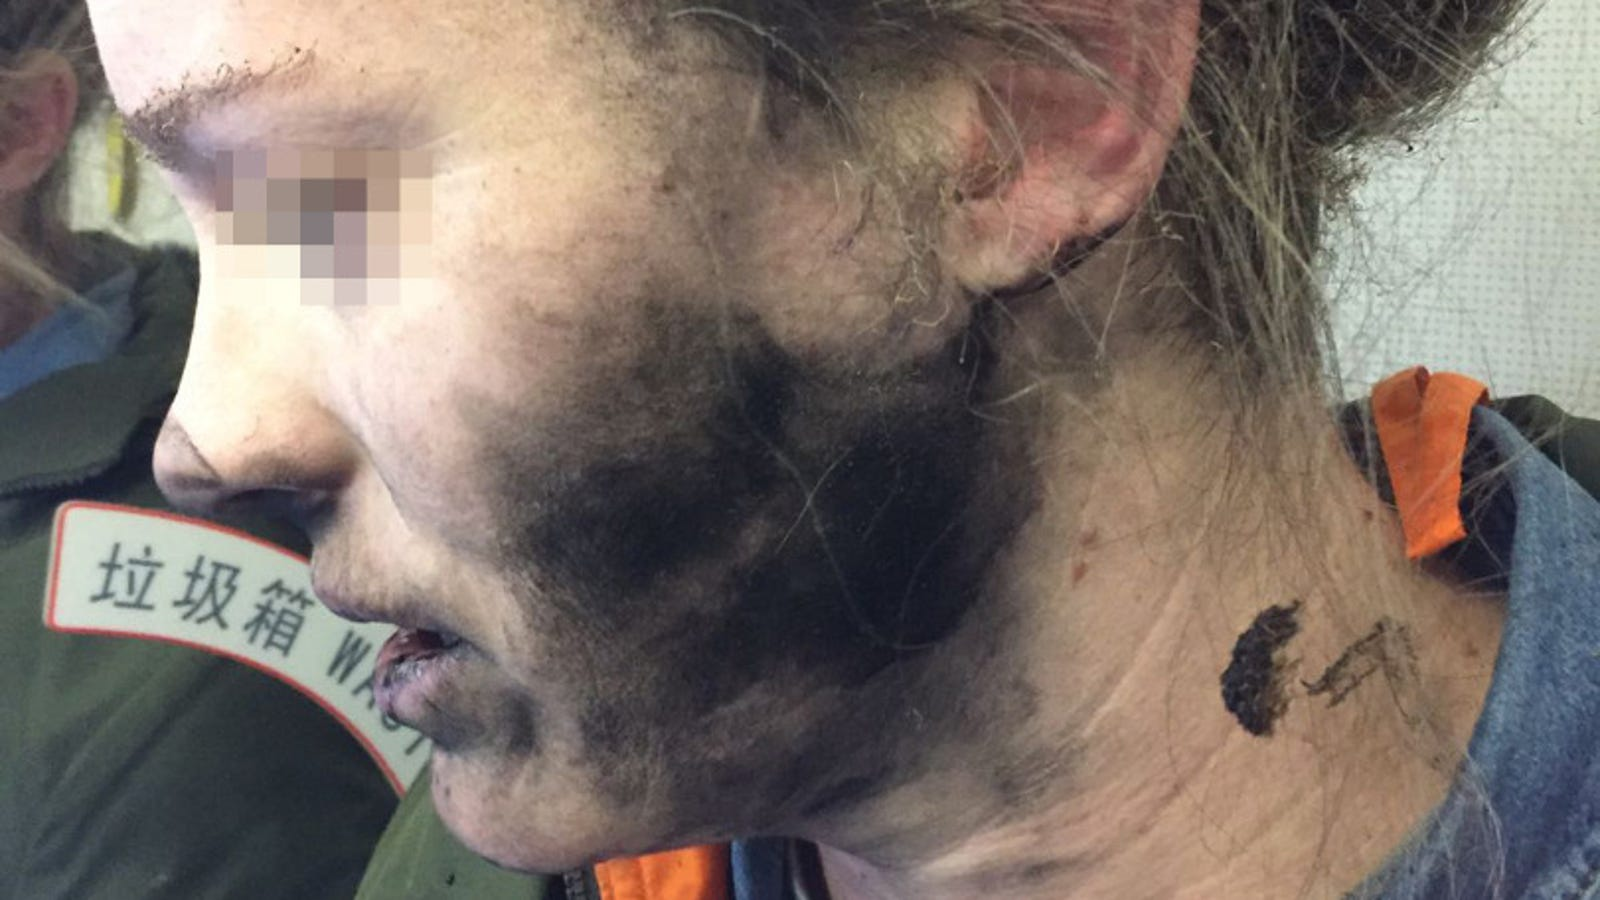 bose wireless headphones around ear - This Is What Happens When Your Headphones Explode on an Airplane [GRAPHIC]